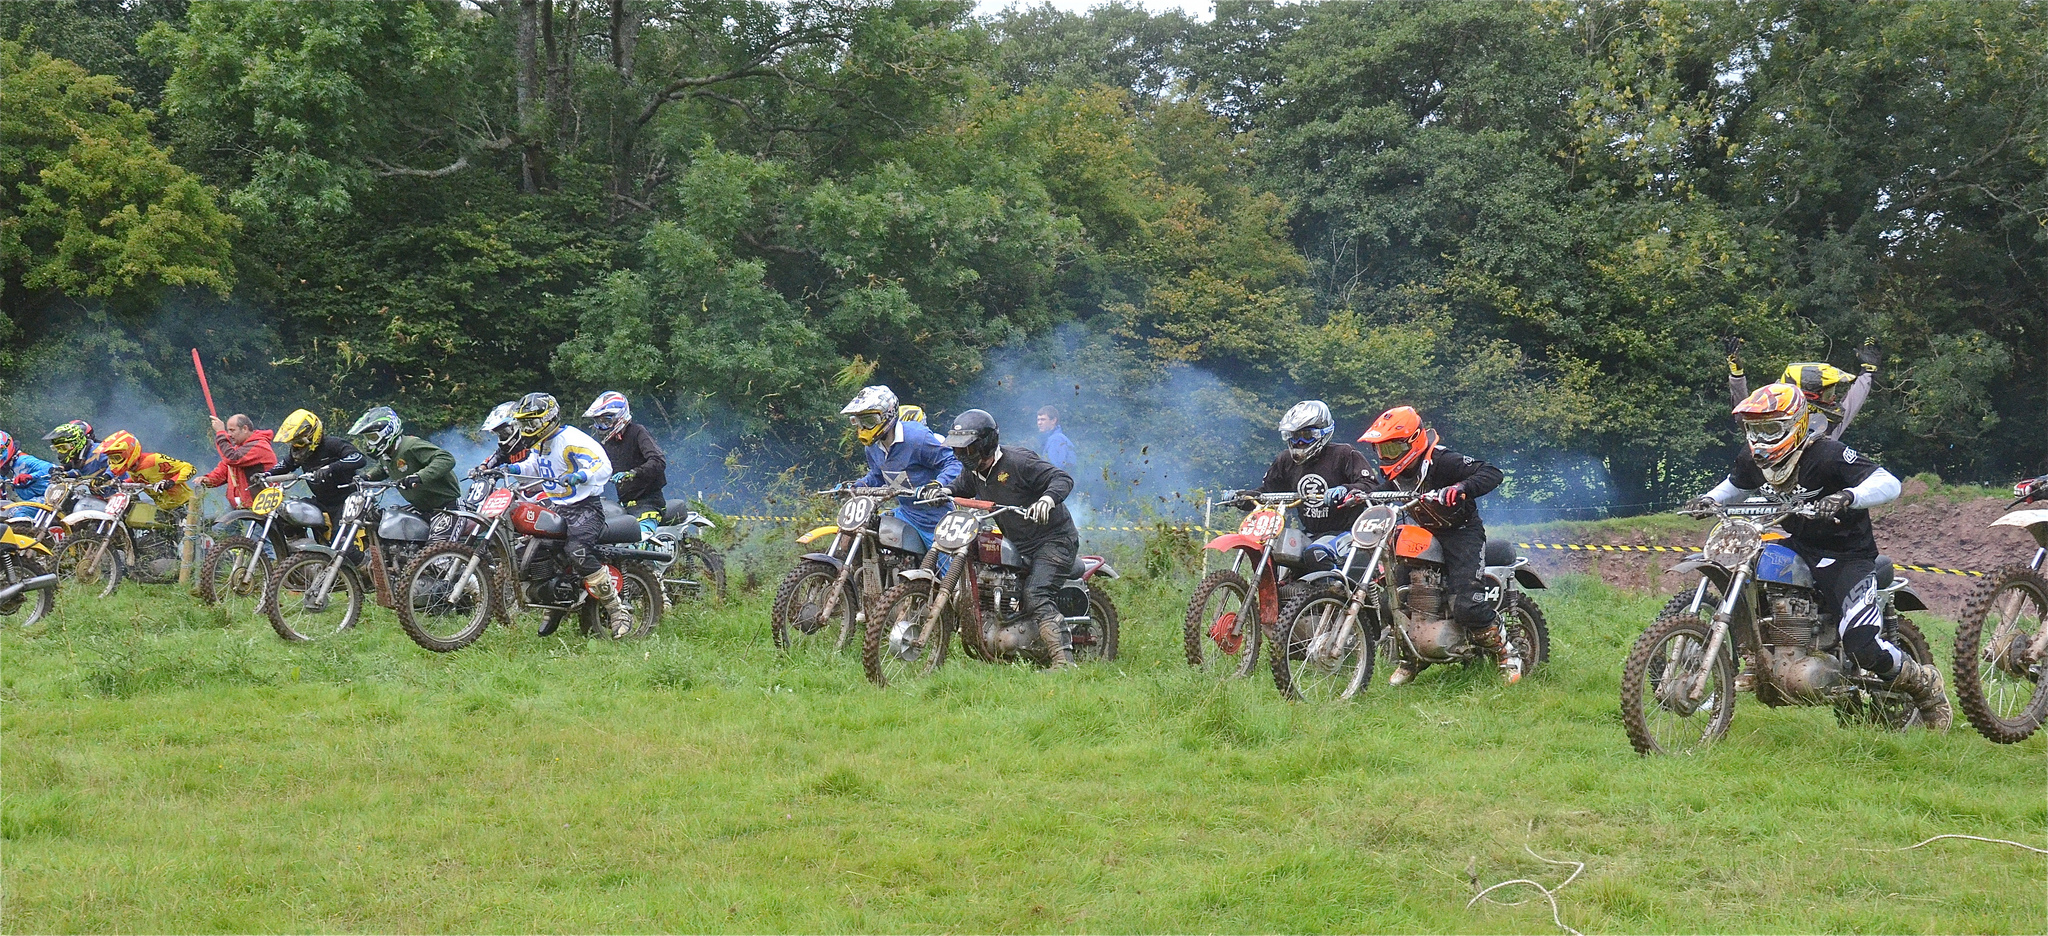 Llanthony Classic Scramble Photos September 2015 classicdirtbikerider.com..12